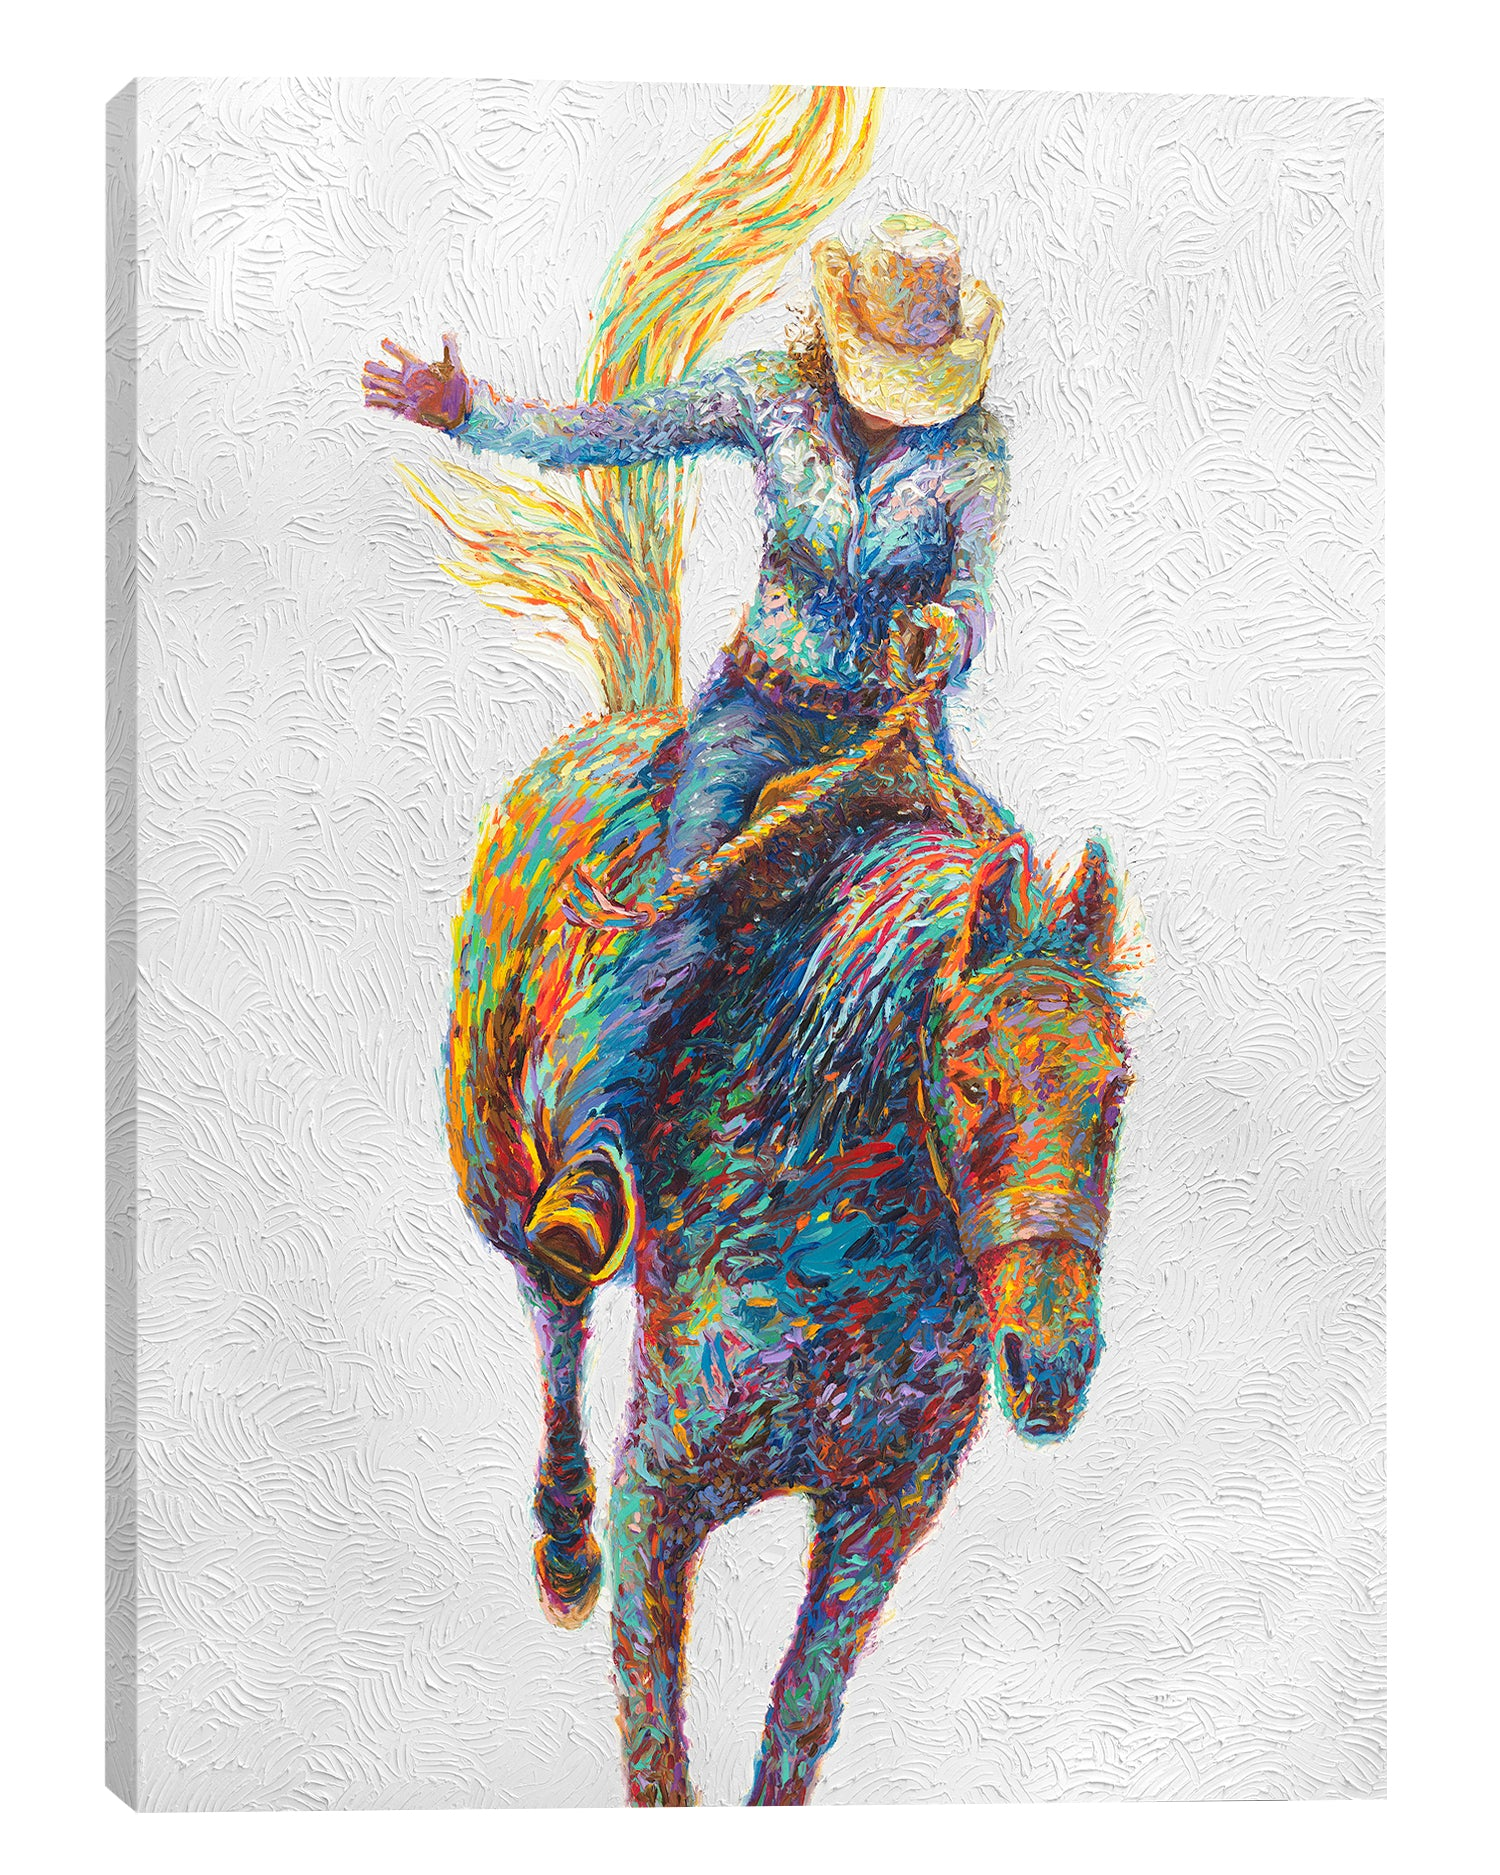 Iris-Scott,Modern & Contemporary,People,Animals,woman,rodeo,horse,hats,cowboy,horses,animals,